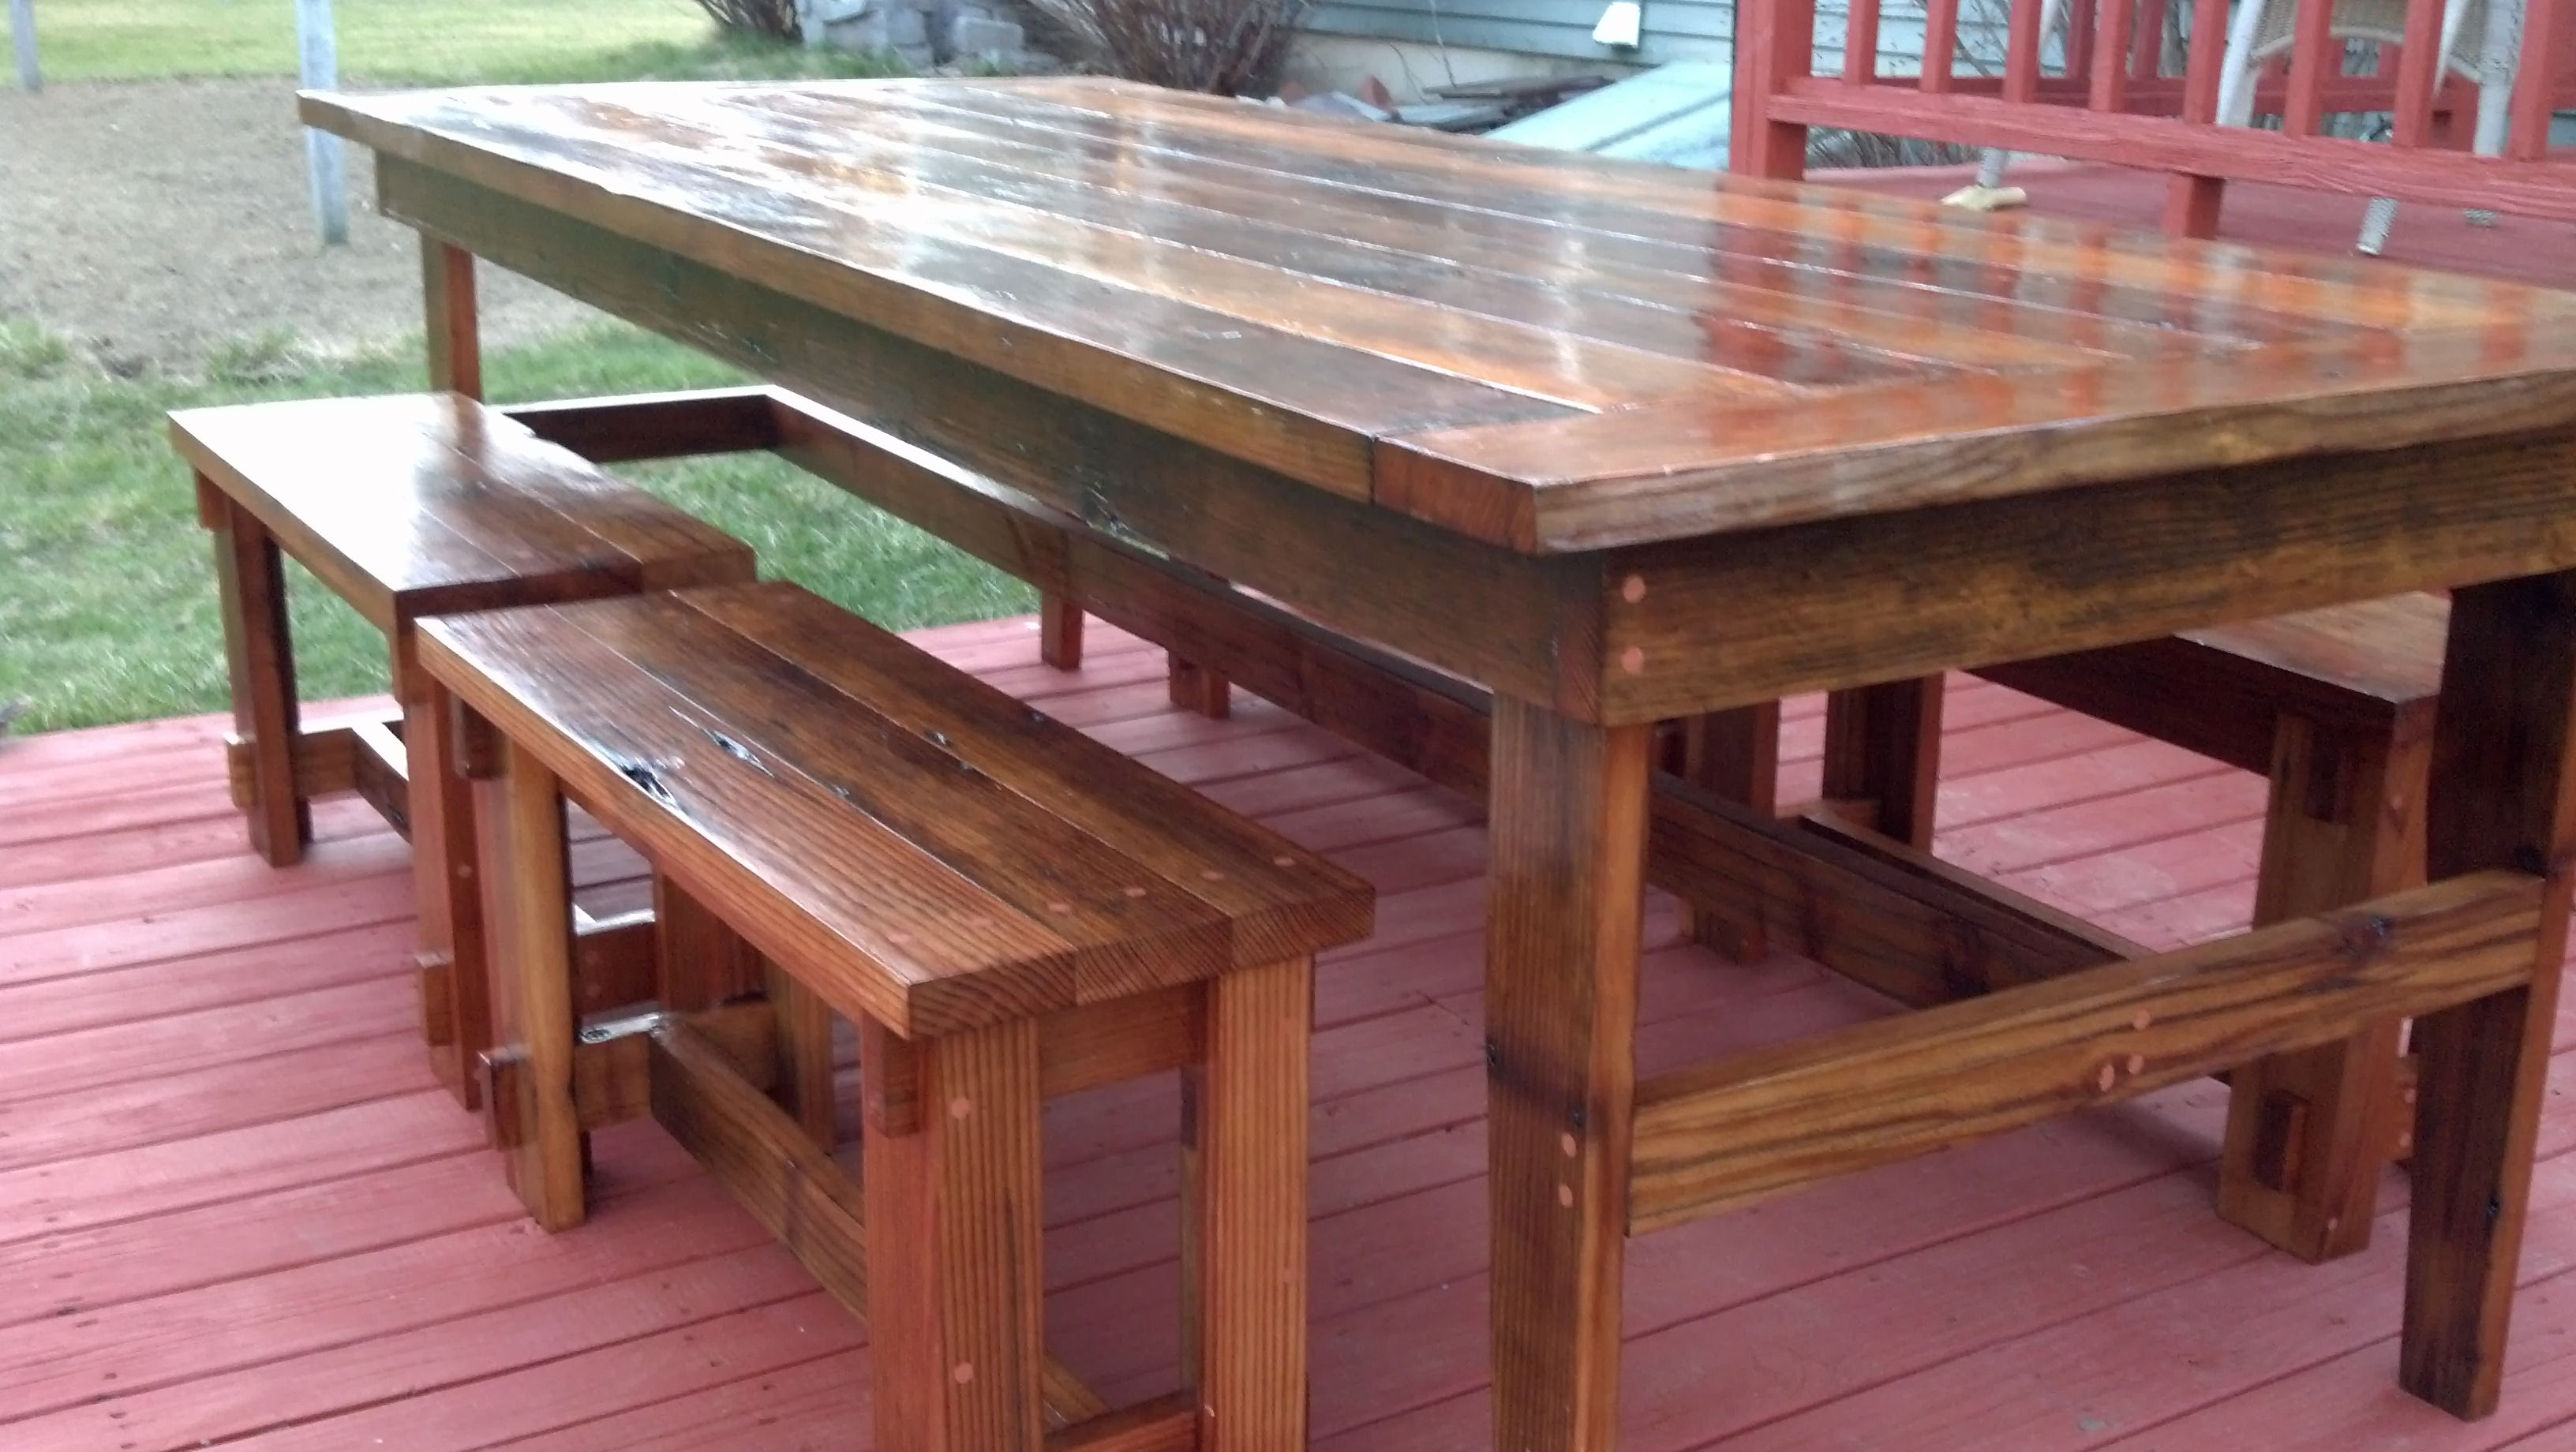 Rustic Farm Table & Benches Do It Yourself Home Projects